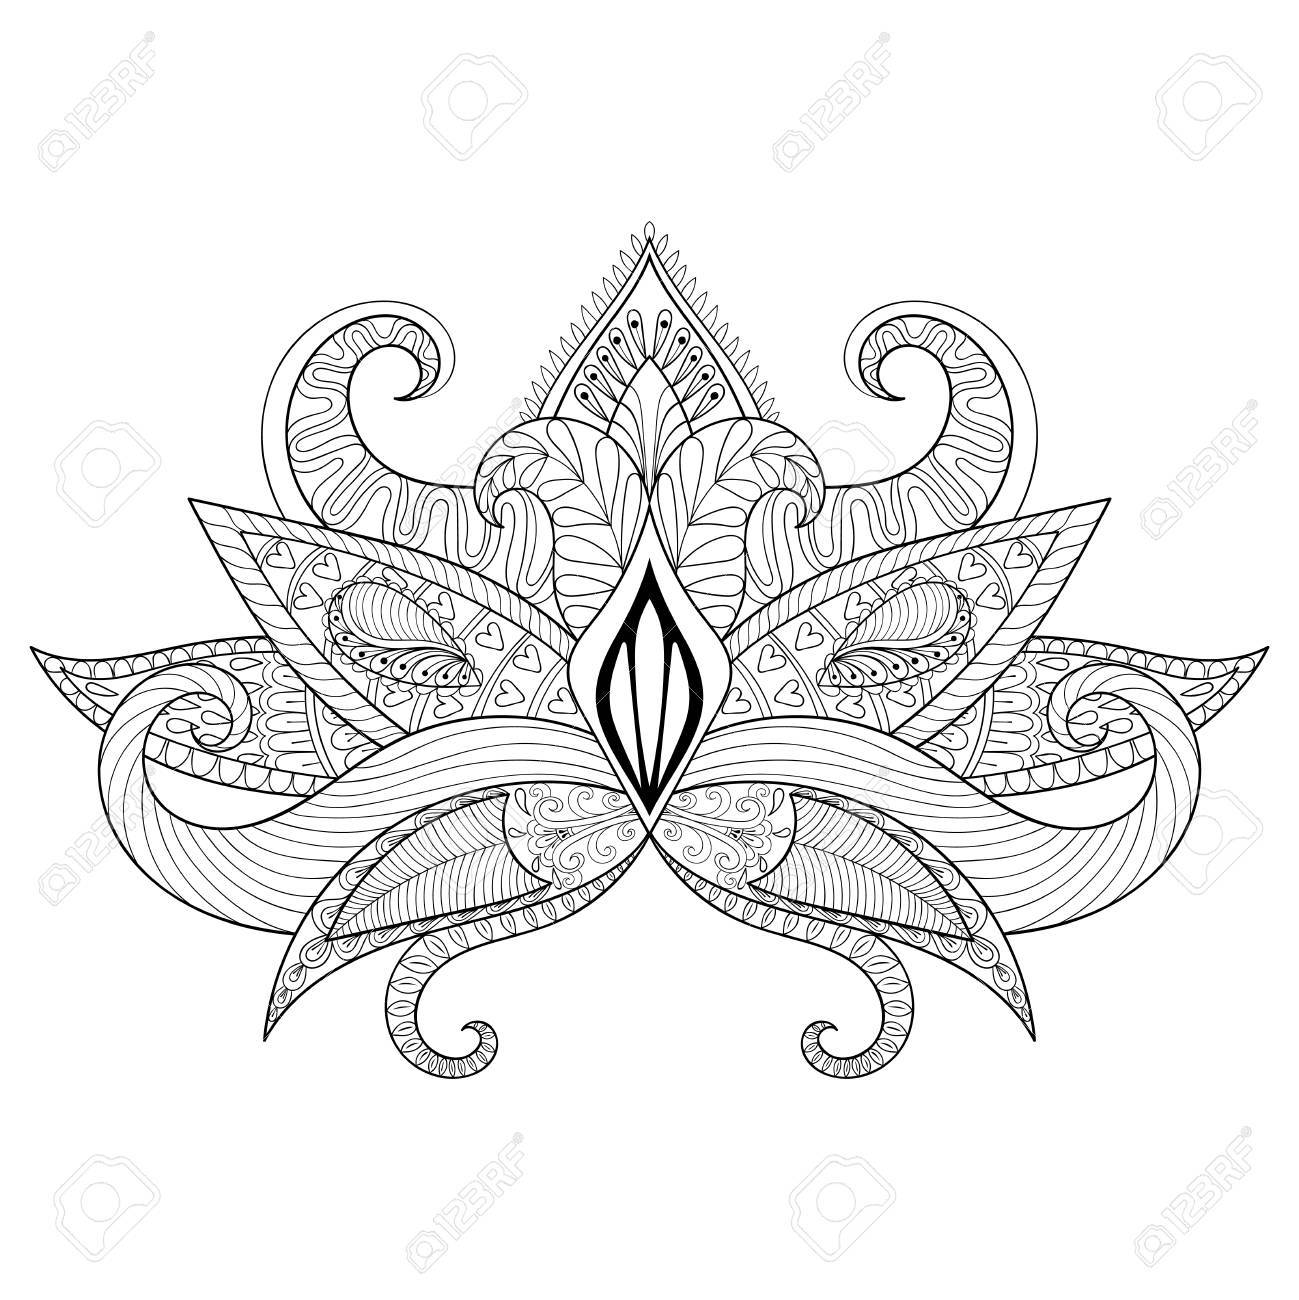 Boho ornamental lotus flower blackwork tattoo design indian boho ornamental lotus flower blackwork tattoo design indian paisley hand drawn vector isolated mightylinksfo